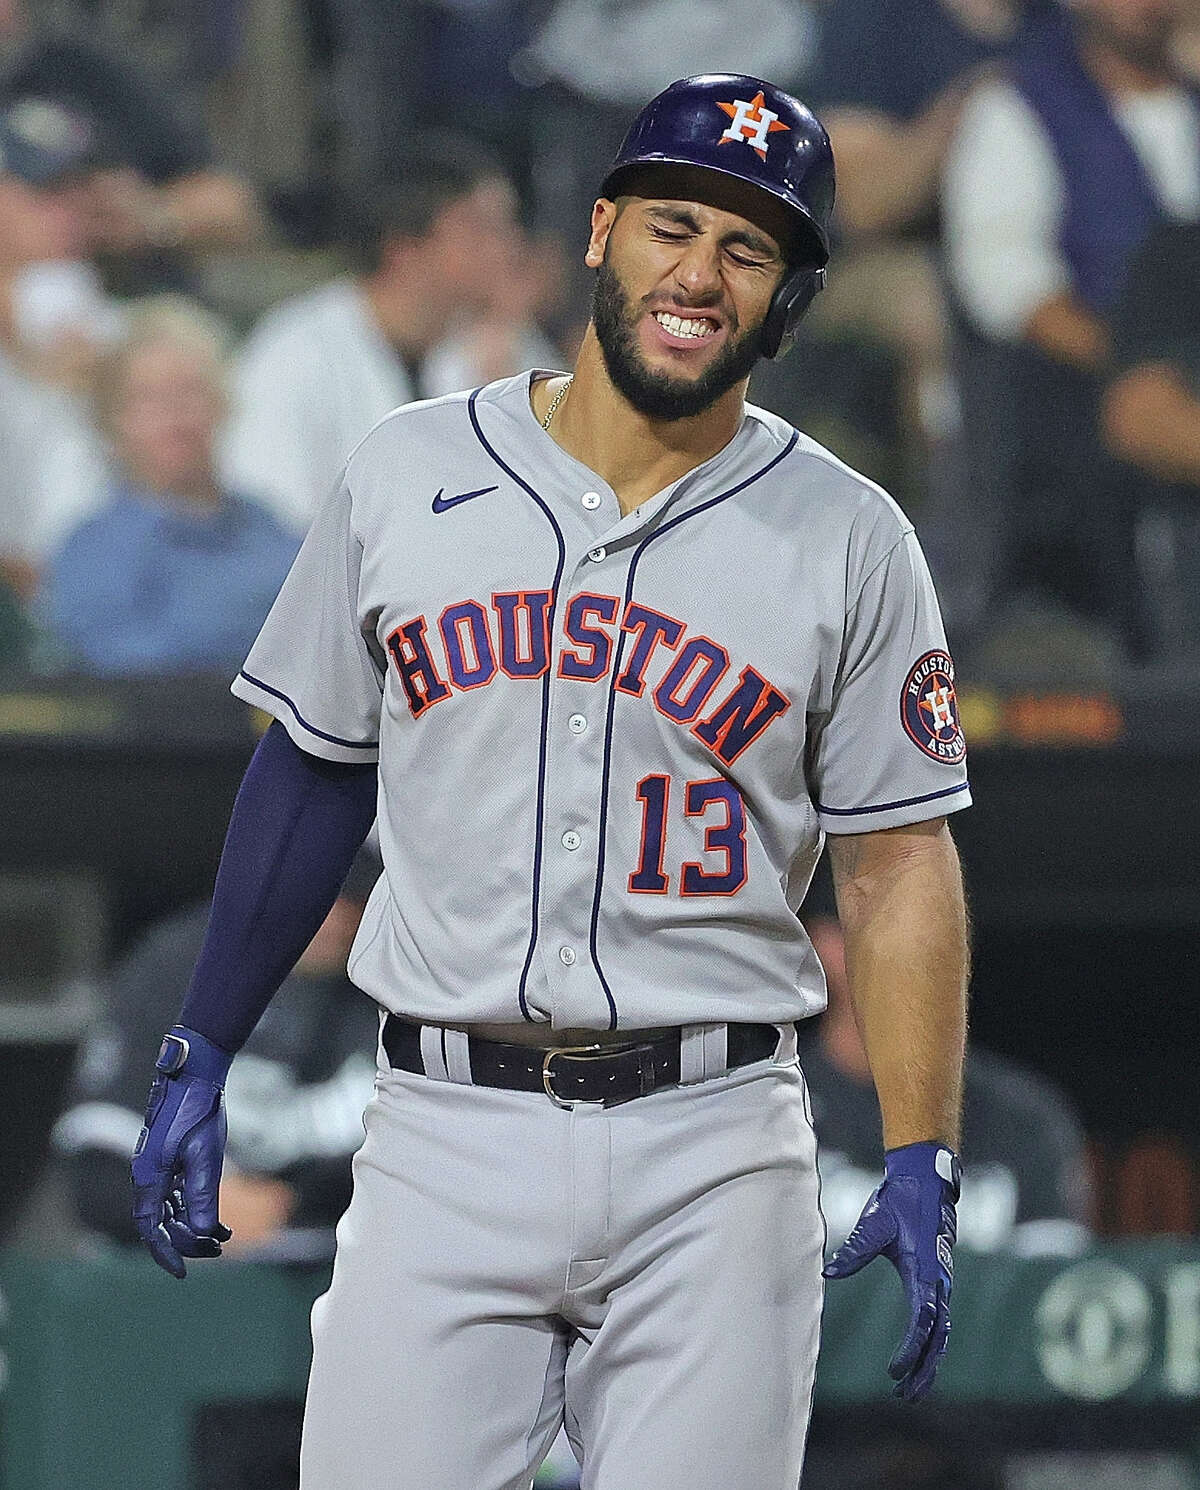 CHICAGO, ILLINOIS - JULY 16: Abraham Toro #13 of the Houston Astros reacts after being hit by a pitch in the 7th inning against the Chicago White Sox at Guaranteed Rate Field on July 16, 2021 in Chicago, Illinois. (Photo by Jonathan Daniel/Getty Images)